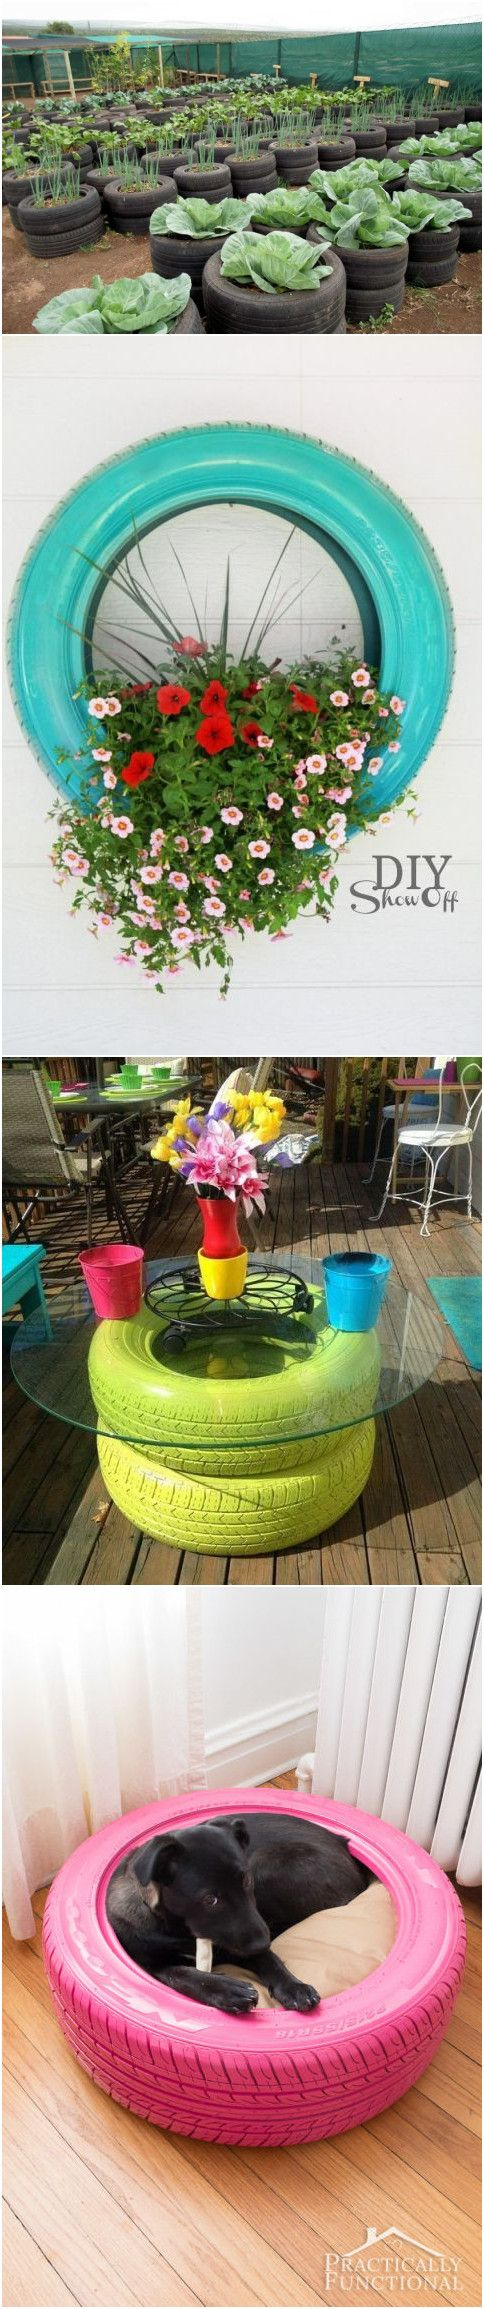 new uses for old tires diy